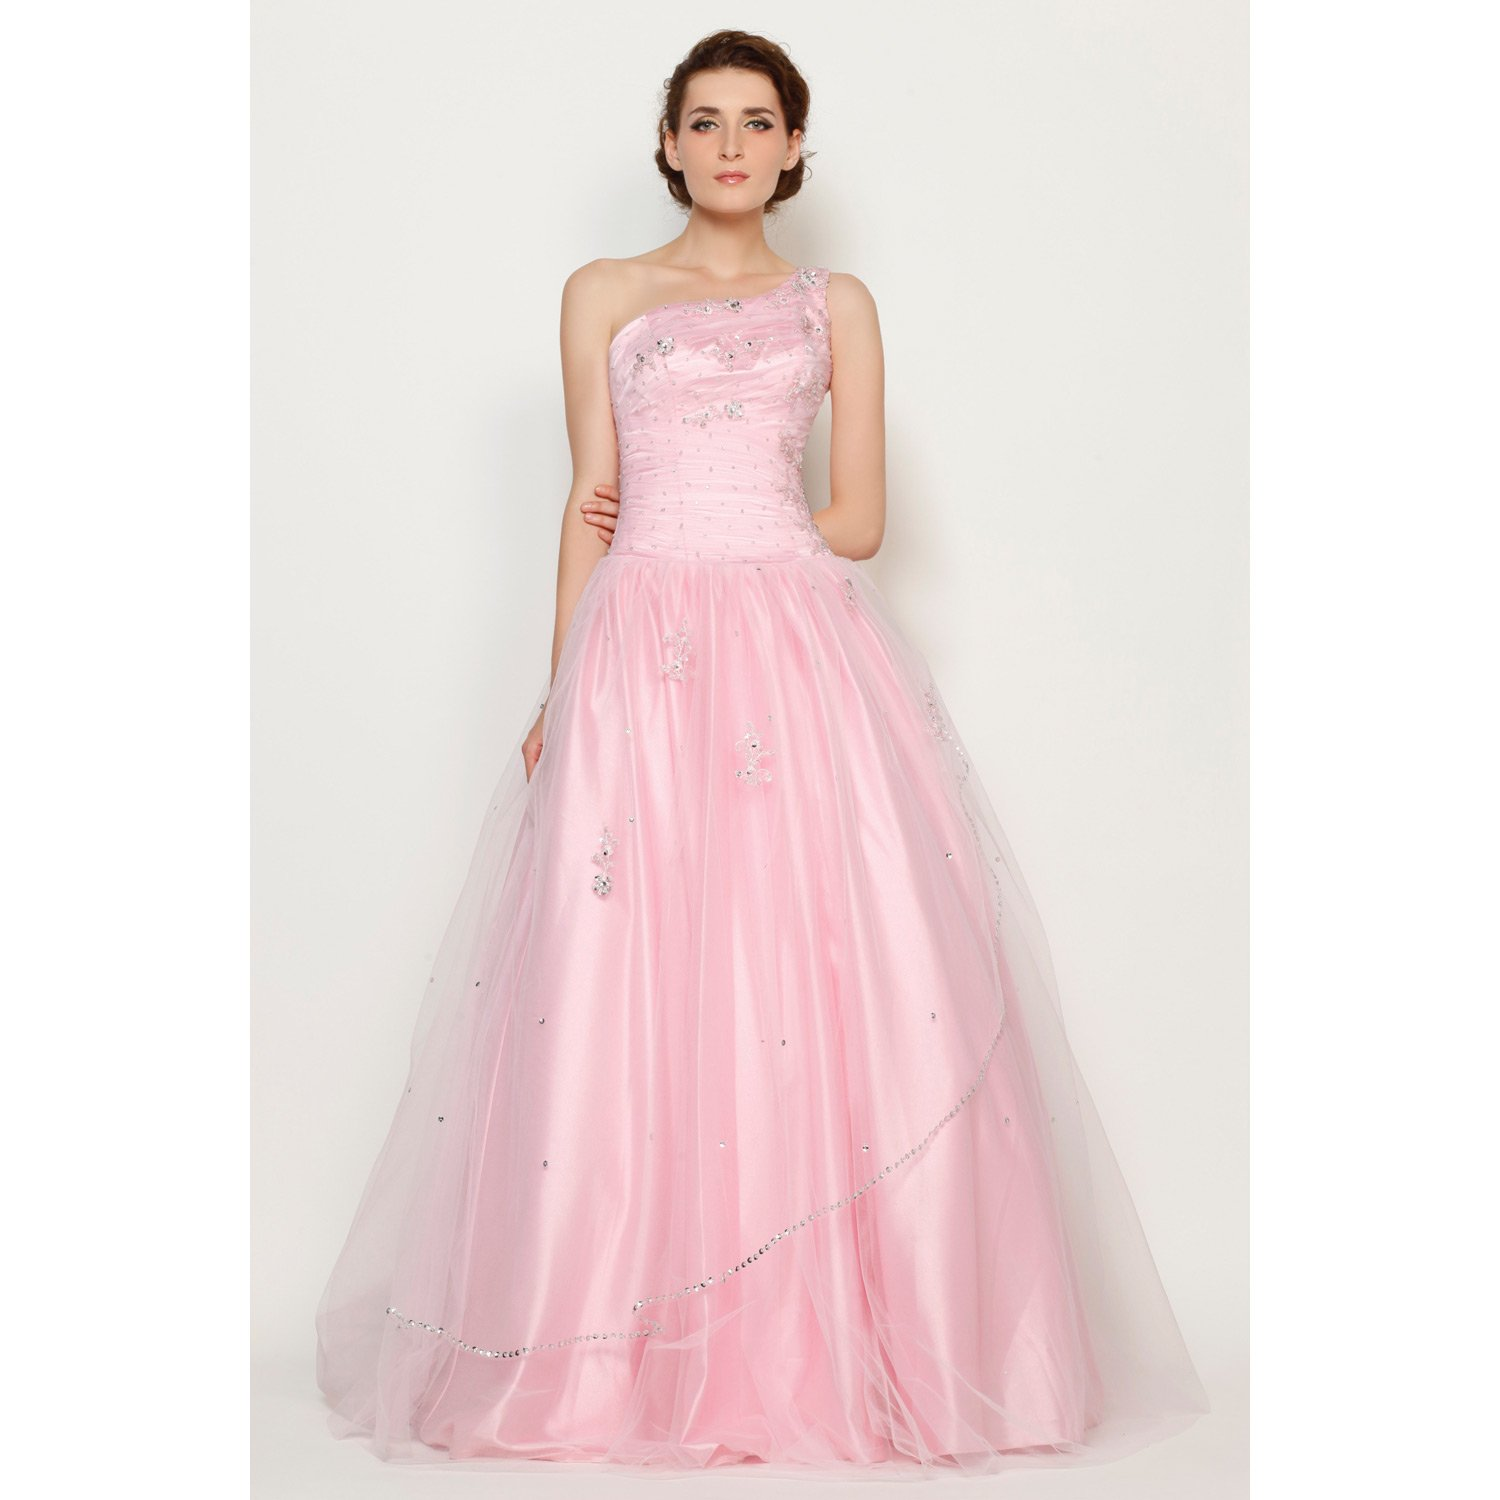 00a4fa4d121 JSSHAN Women s Strapless Sweetheart Beaded Flowers Organza Princess Ball  Gown Quinceanera Dress Size US2 UK6 EUR34 Color Champagne  Amazon.co.uk   Clothing